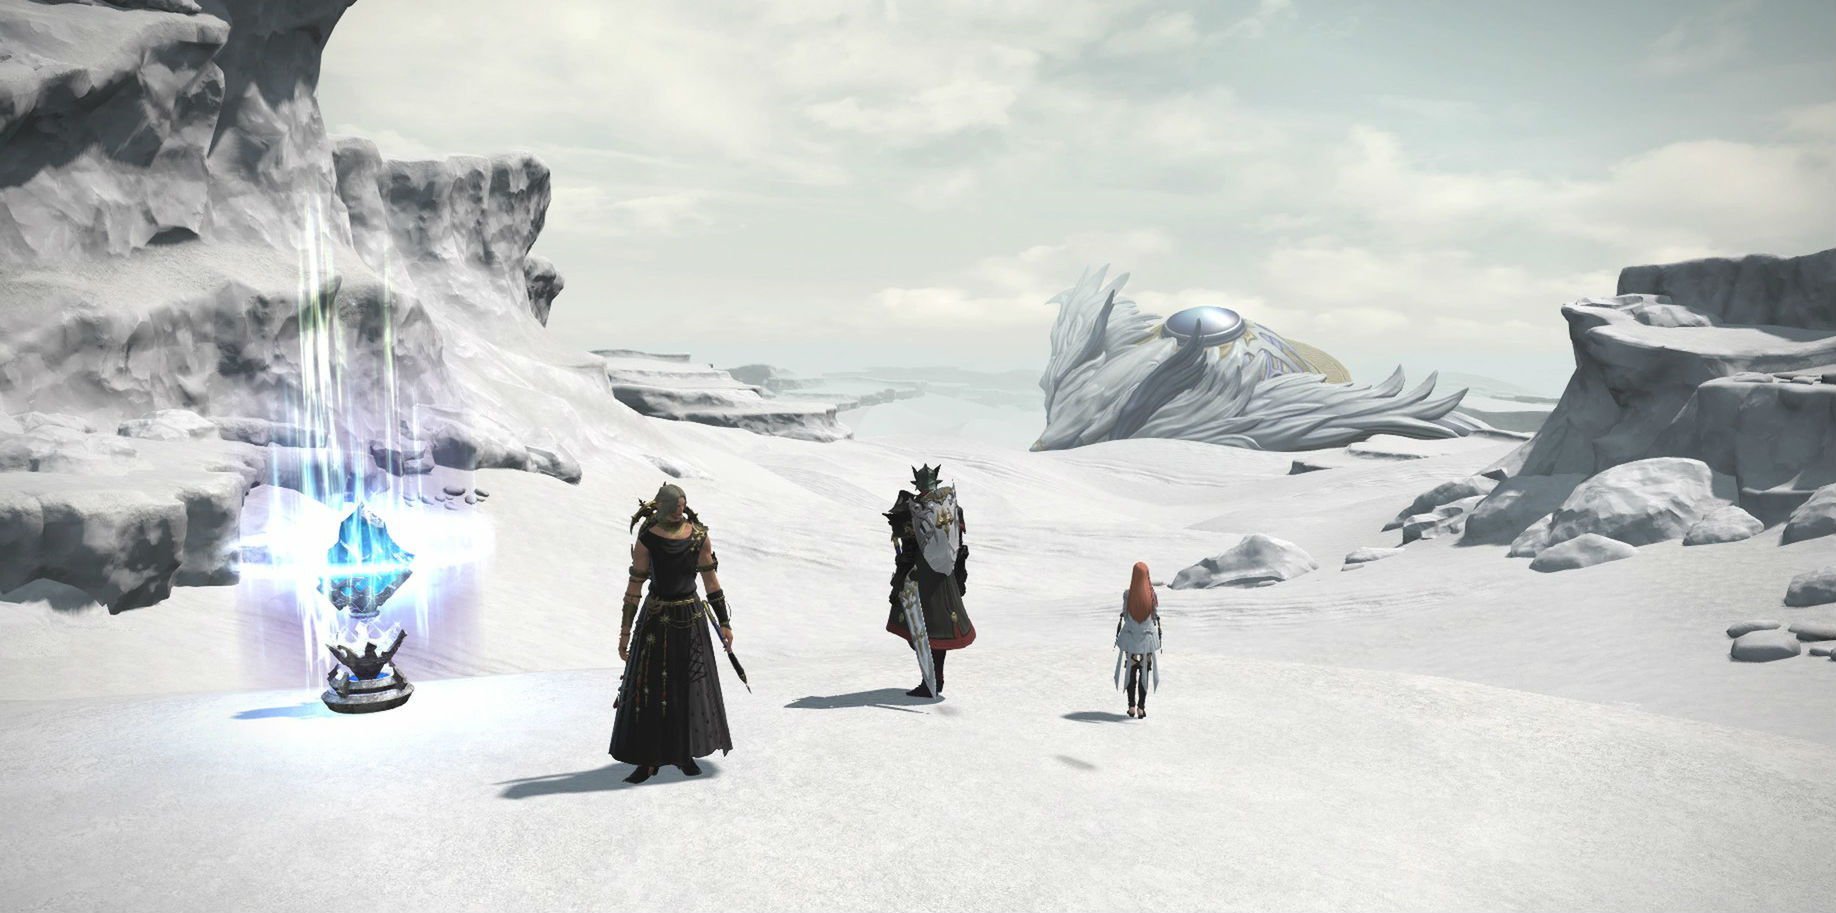 Final Fantasy XIV's new Eden raid is out today, here's how